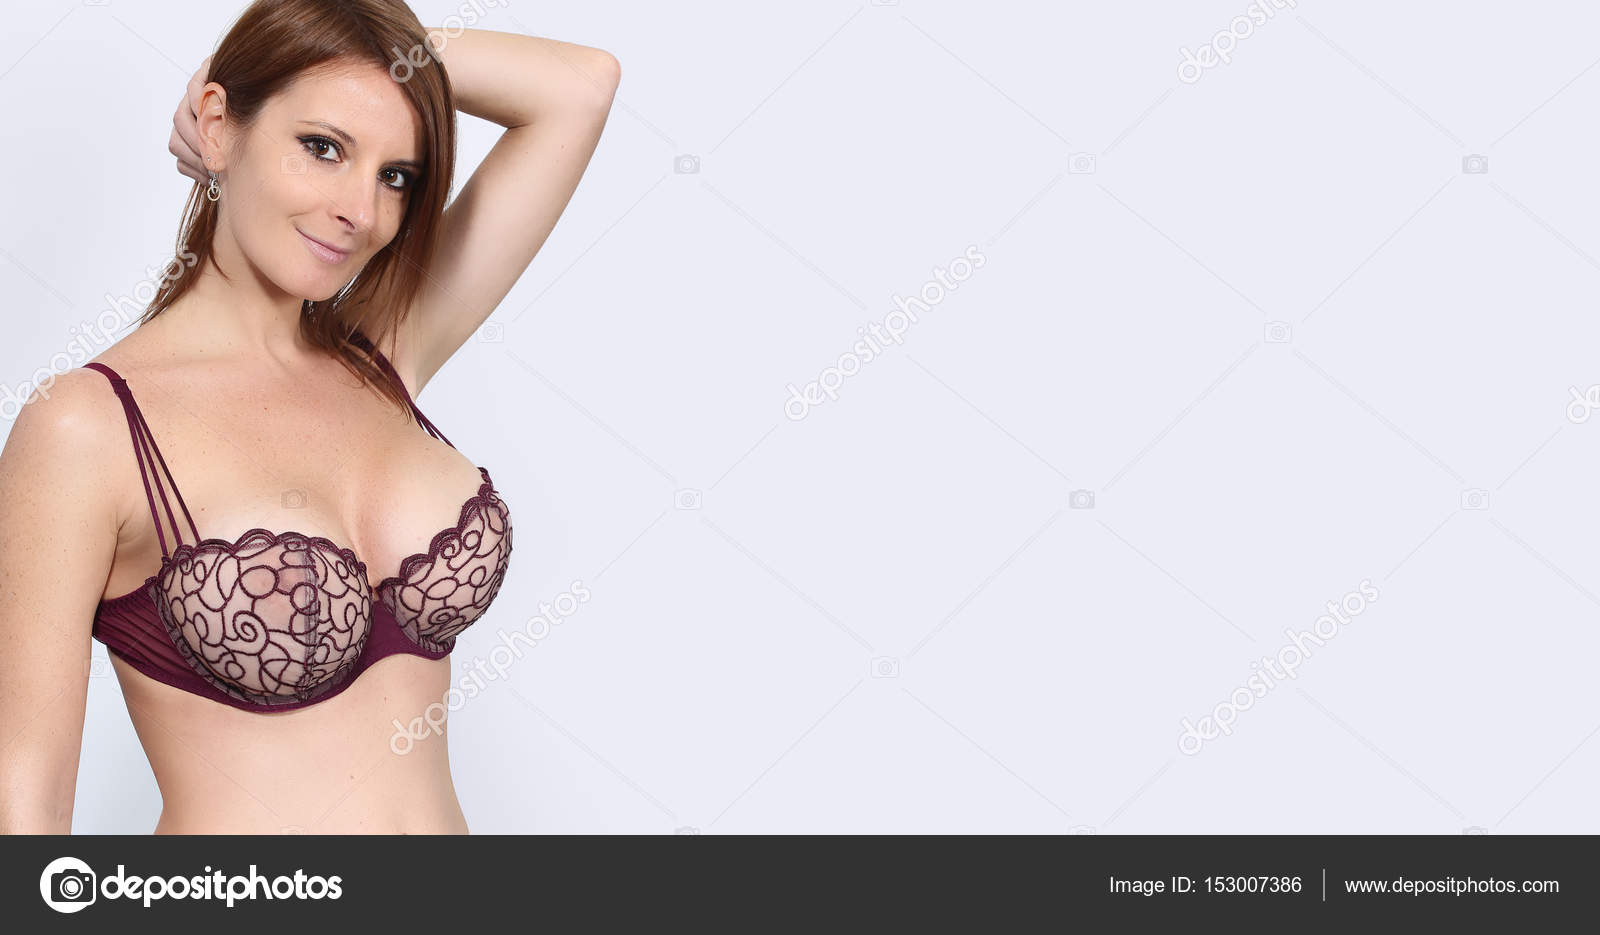 606e8a5d2 Banner of a beautiful woman posing with a bra - breast implant concept–  stock image